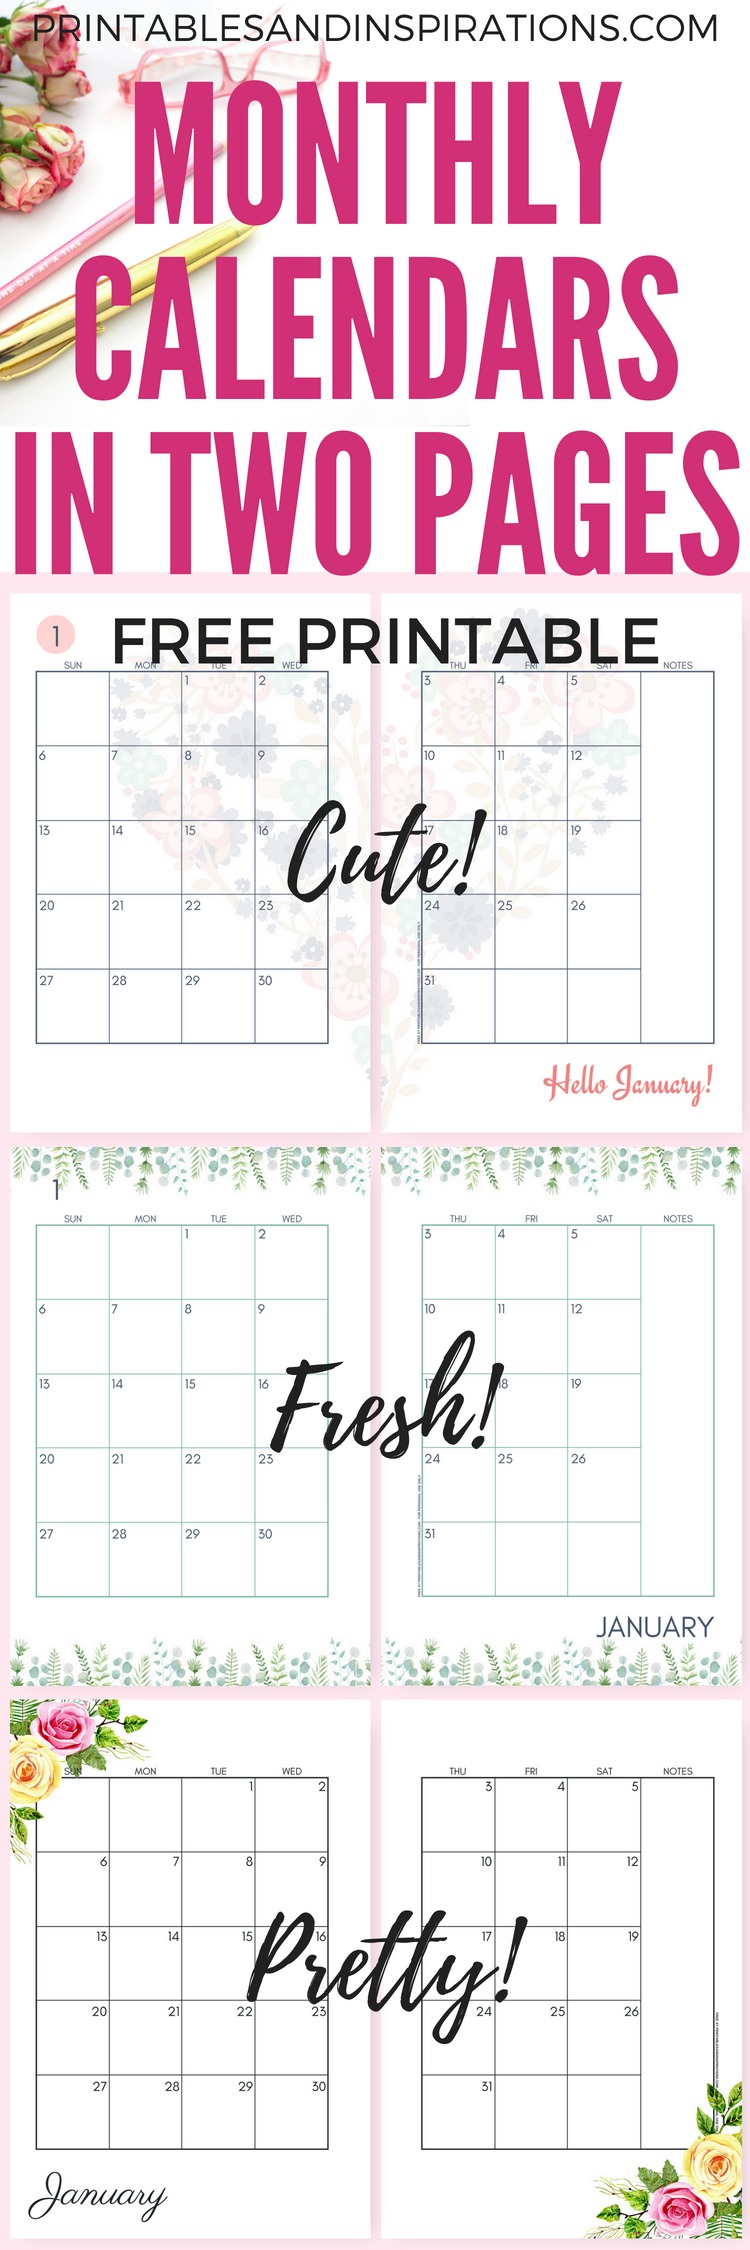 2019 monthly calendar two page spread free printable printables